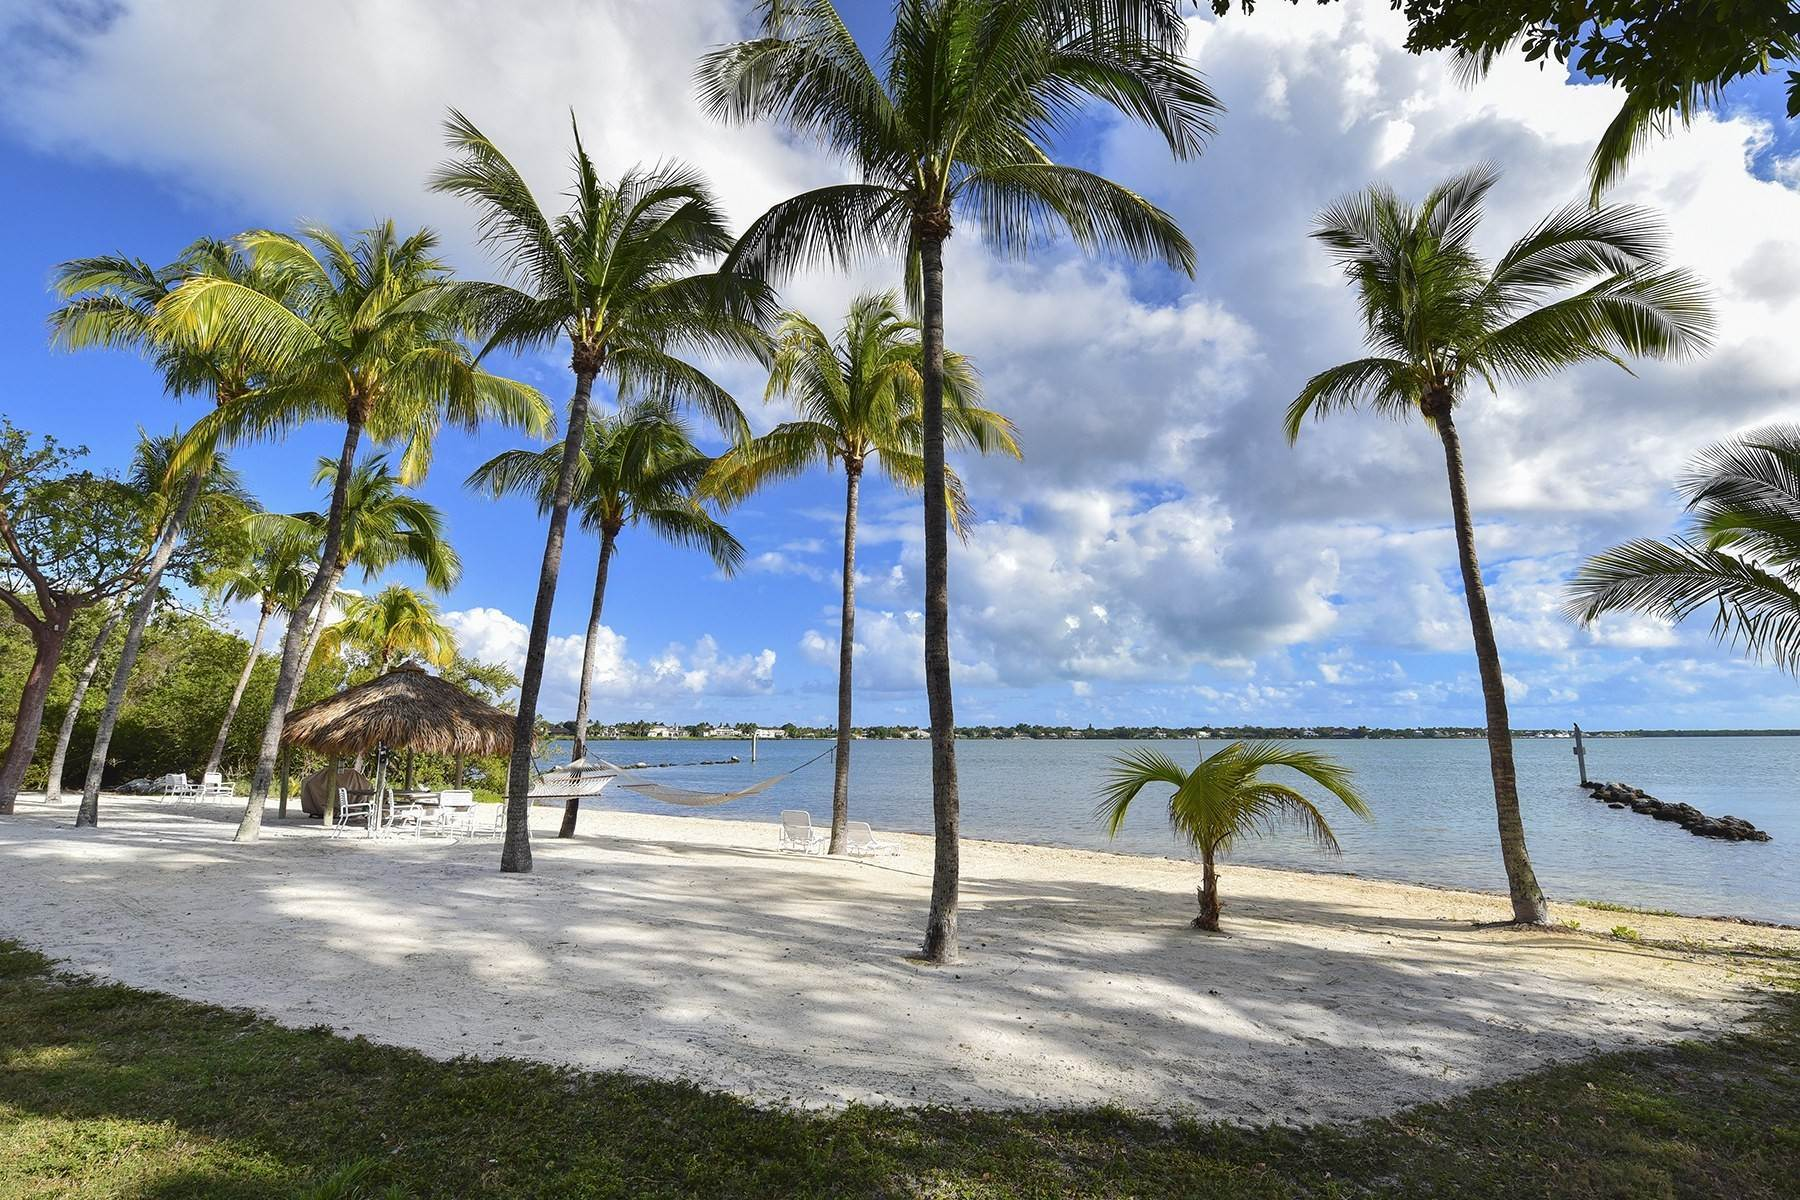 7. Property for Sale at Pumpkin Key - Private Island, Key Largo, FL Pumpkin Key - Private Island Key Largo, Florida 33037 United States